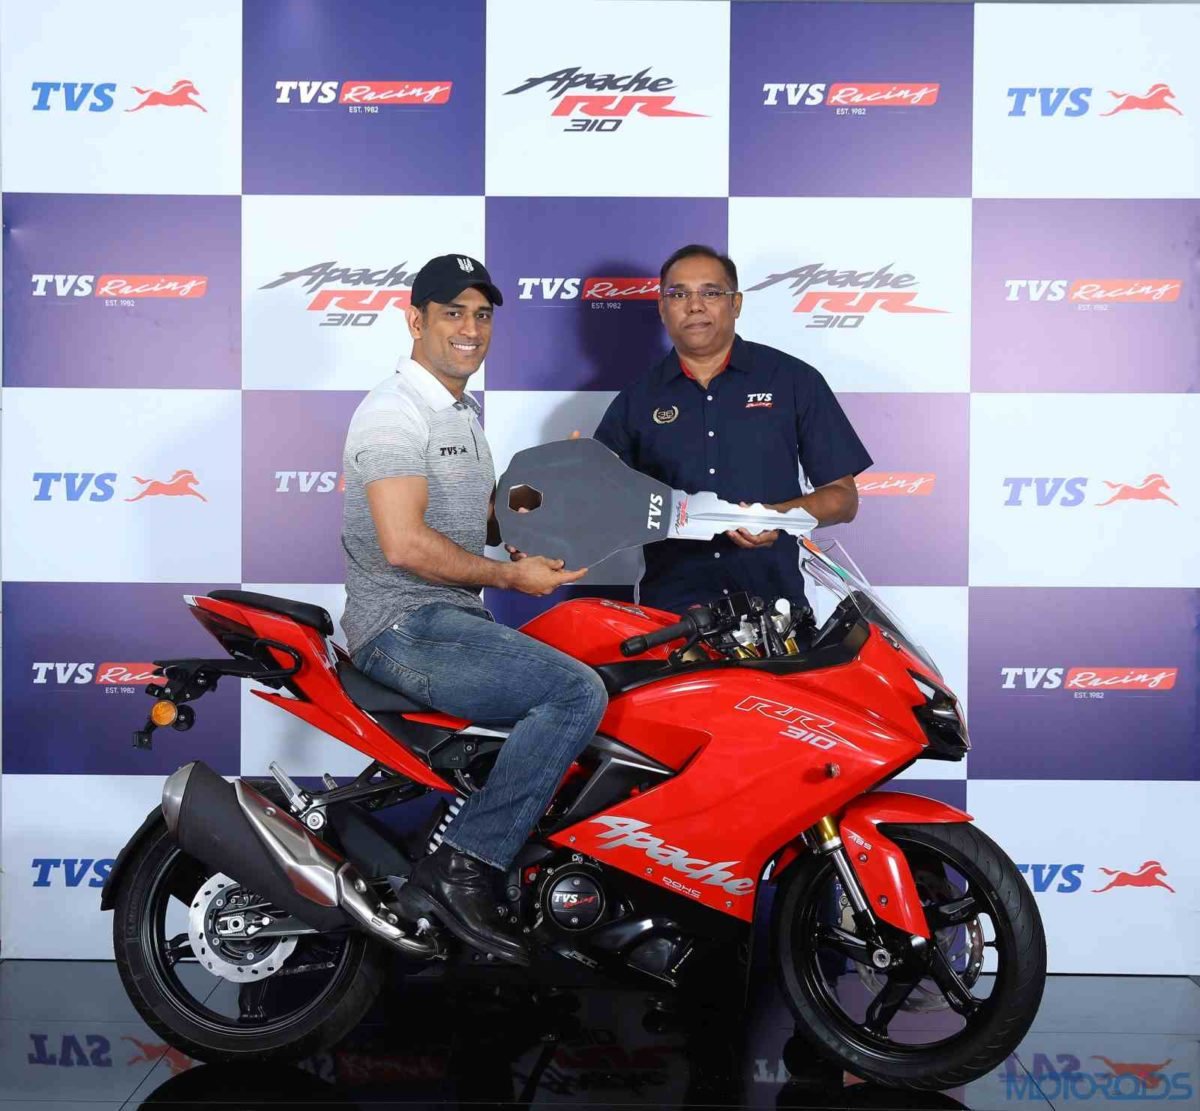 2019 TVS Apache RR 310 With Slipper clutch and Dhoni